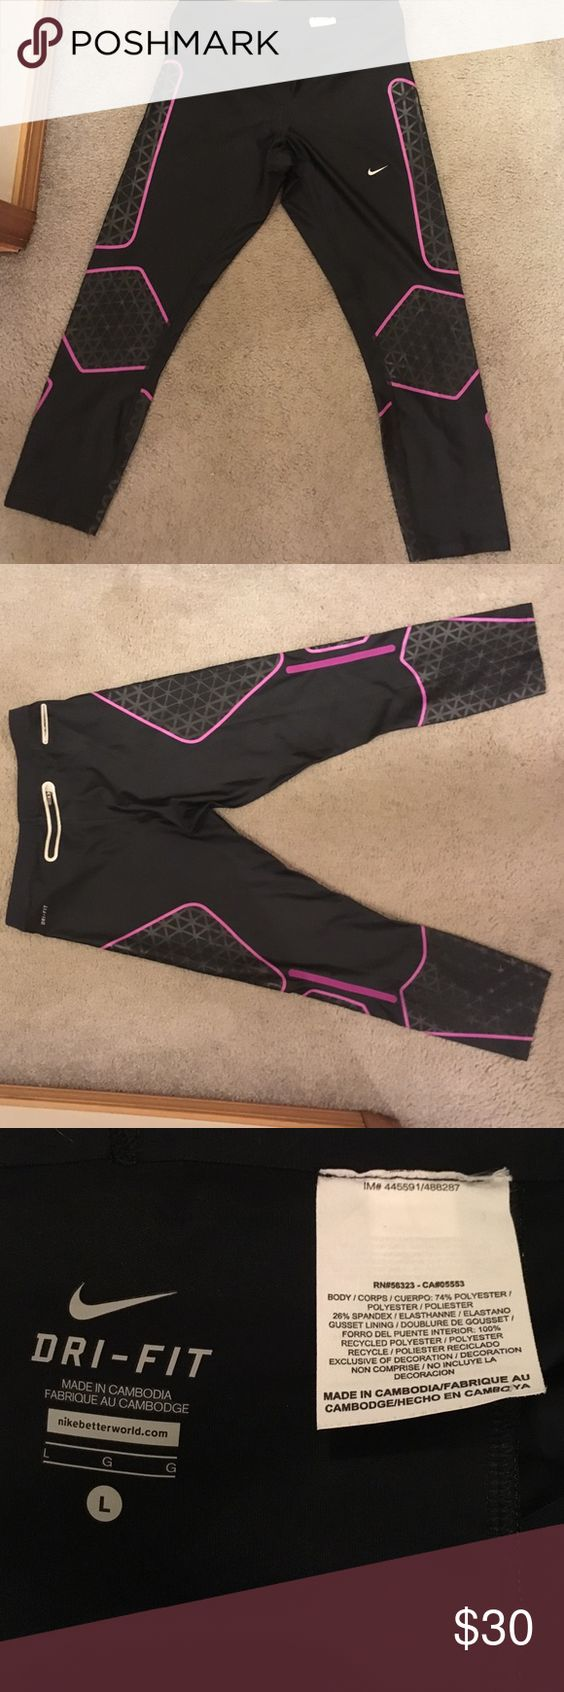 Nike Dri-Fit Capri Leggings Large Never worn black with gray and fascia, has a pocket in back for phone, etc. Perfect condition Nike Pants Leggings